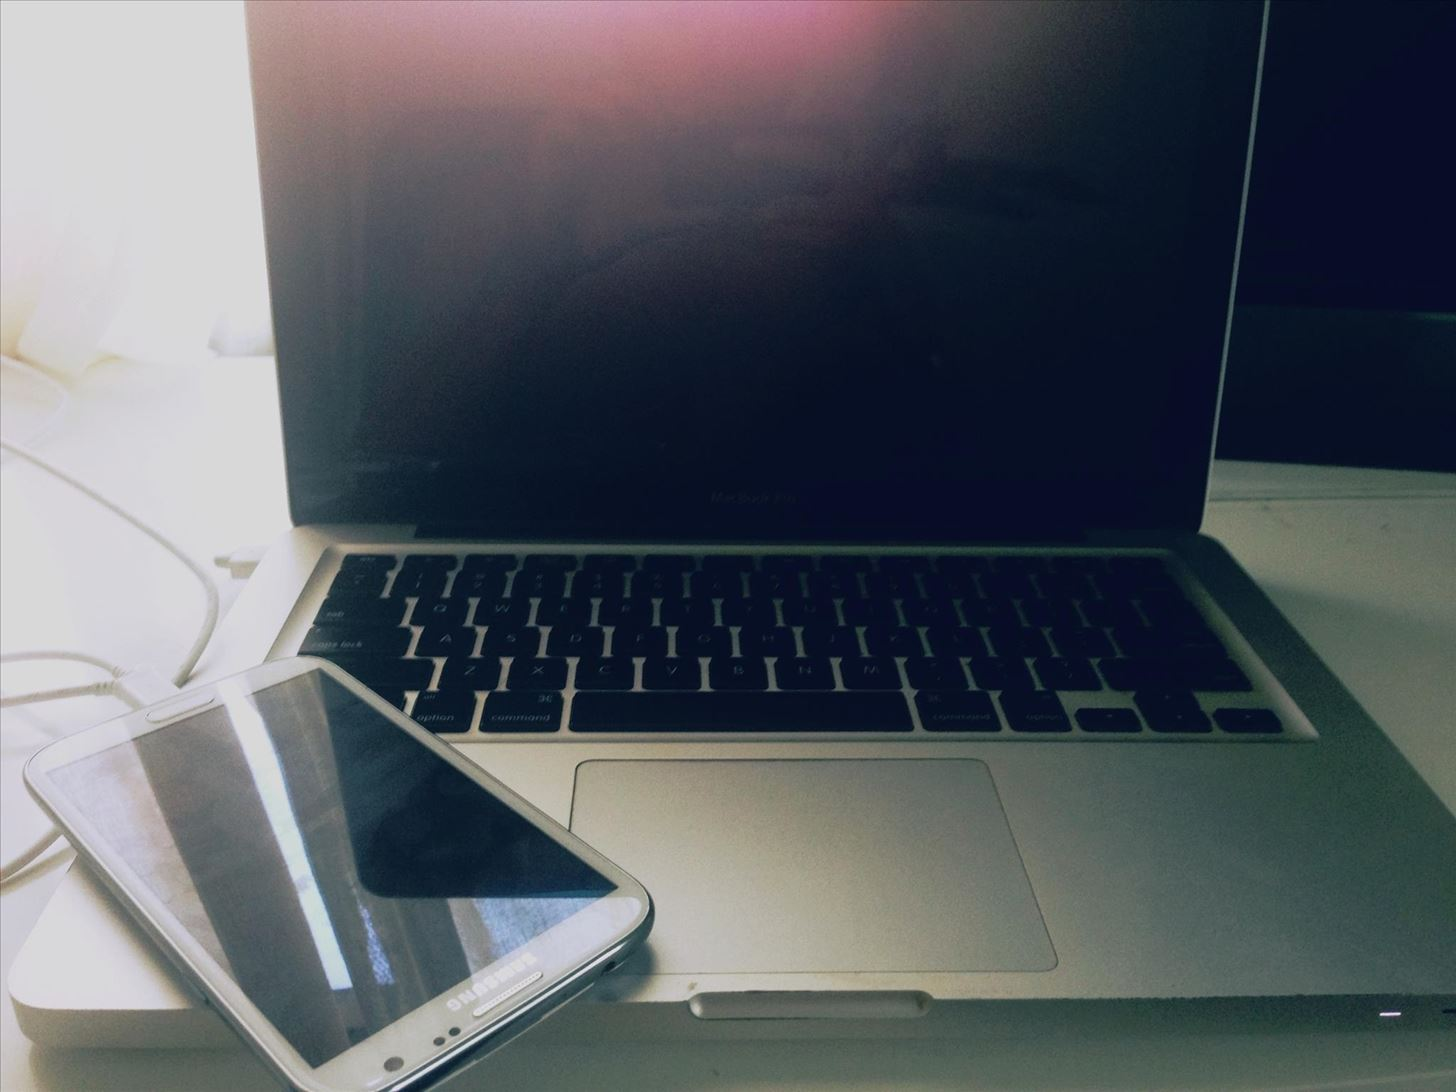 How to Put Your MacBook to Sleep with an iPhone 5, Samsung Galaxy S3, or Other Mobile Device